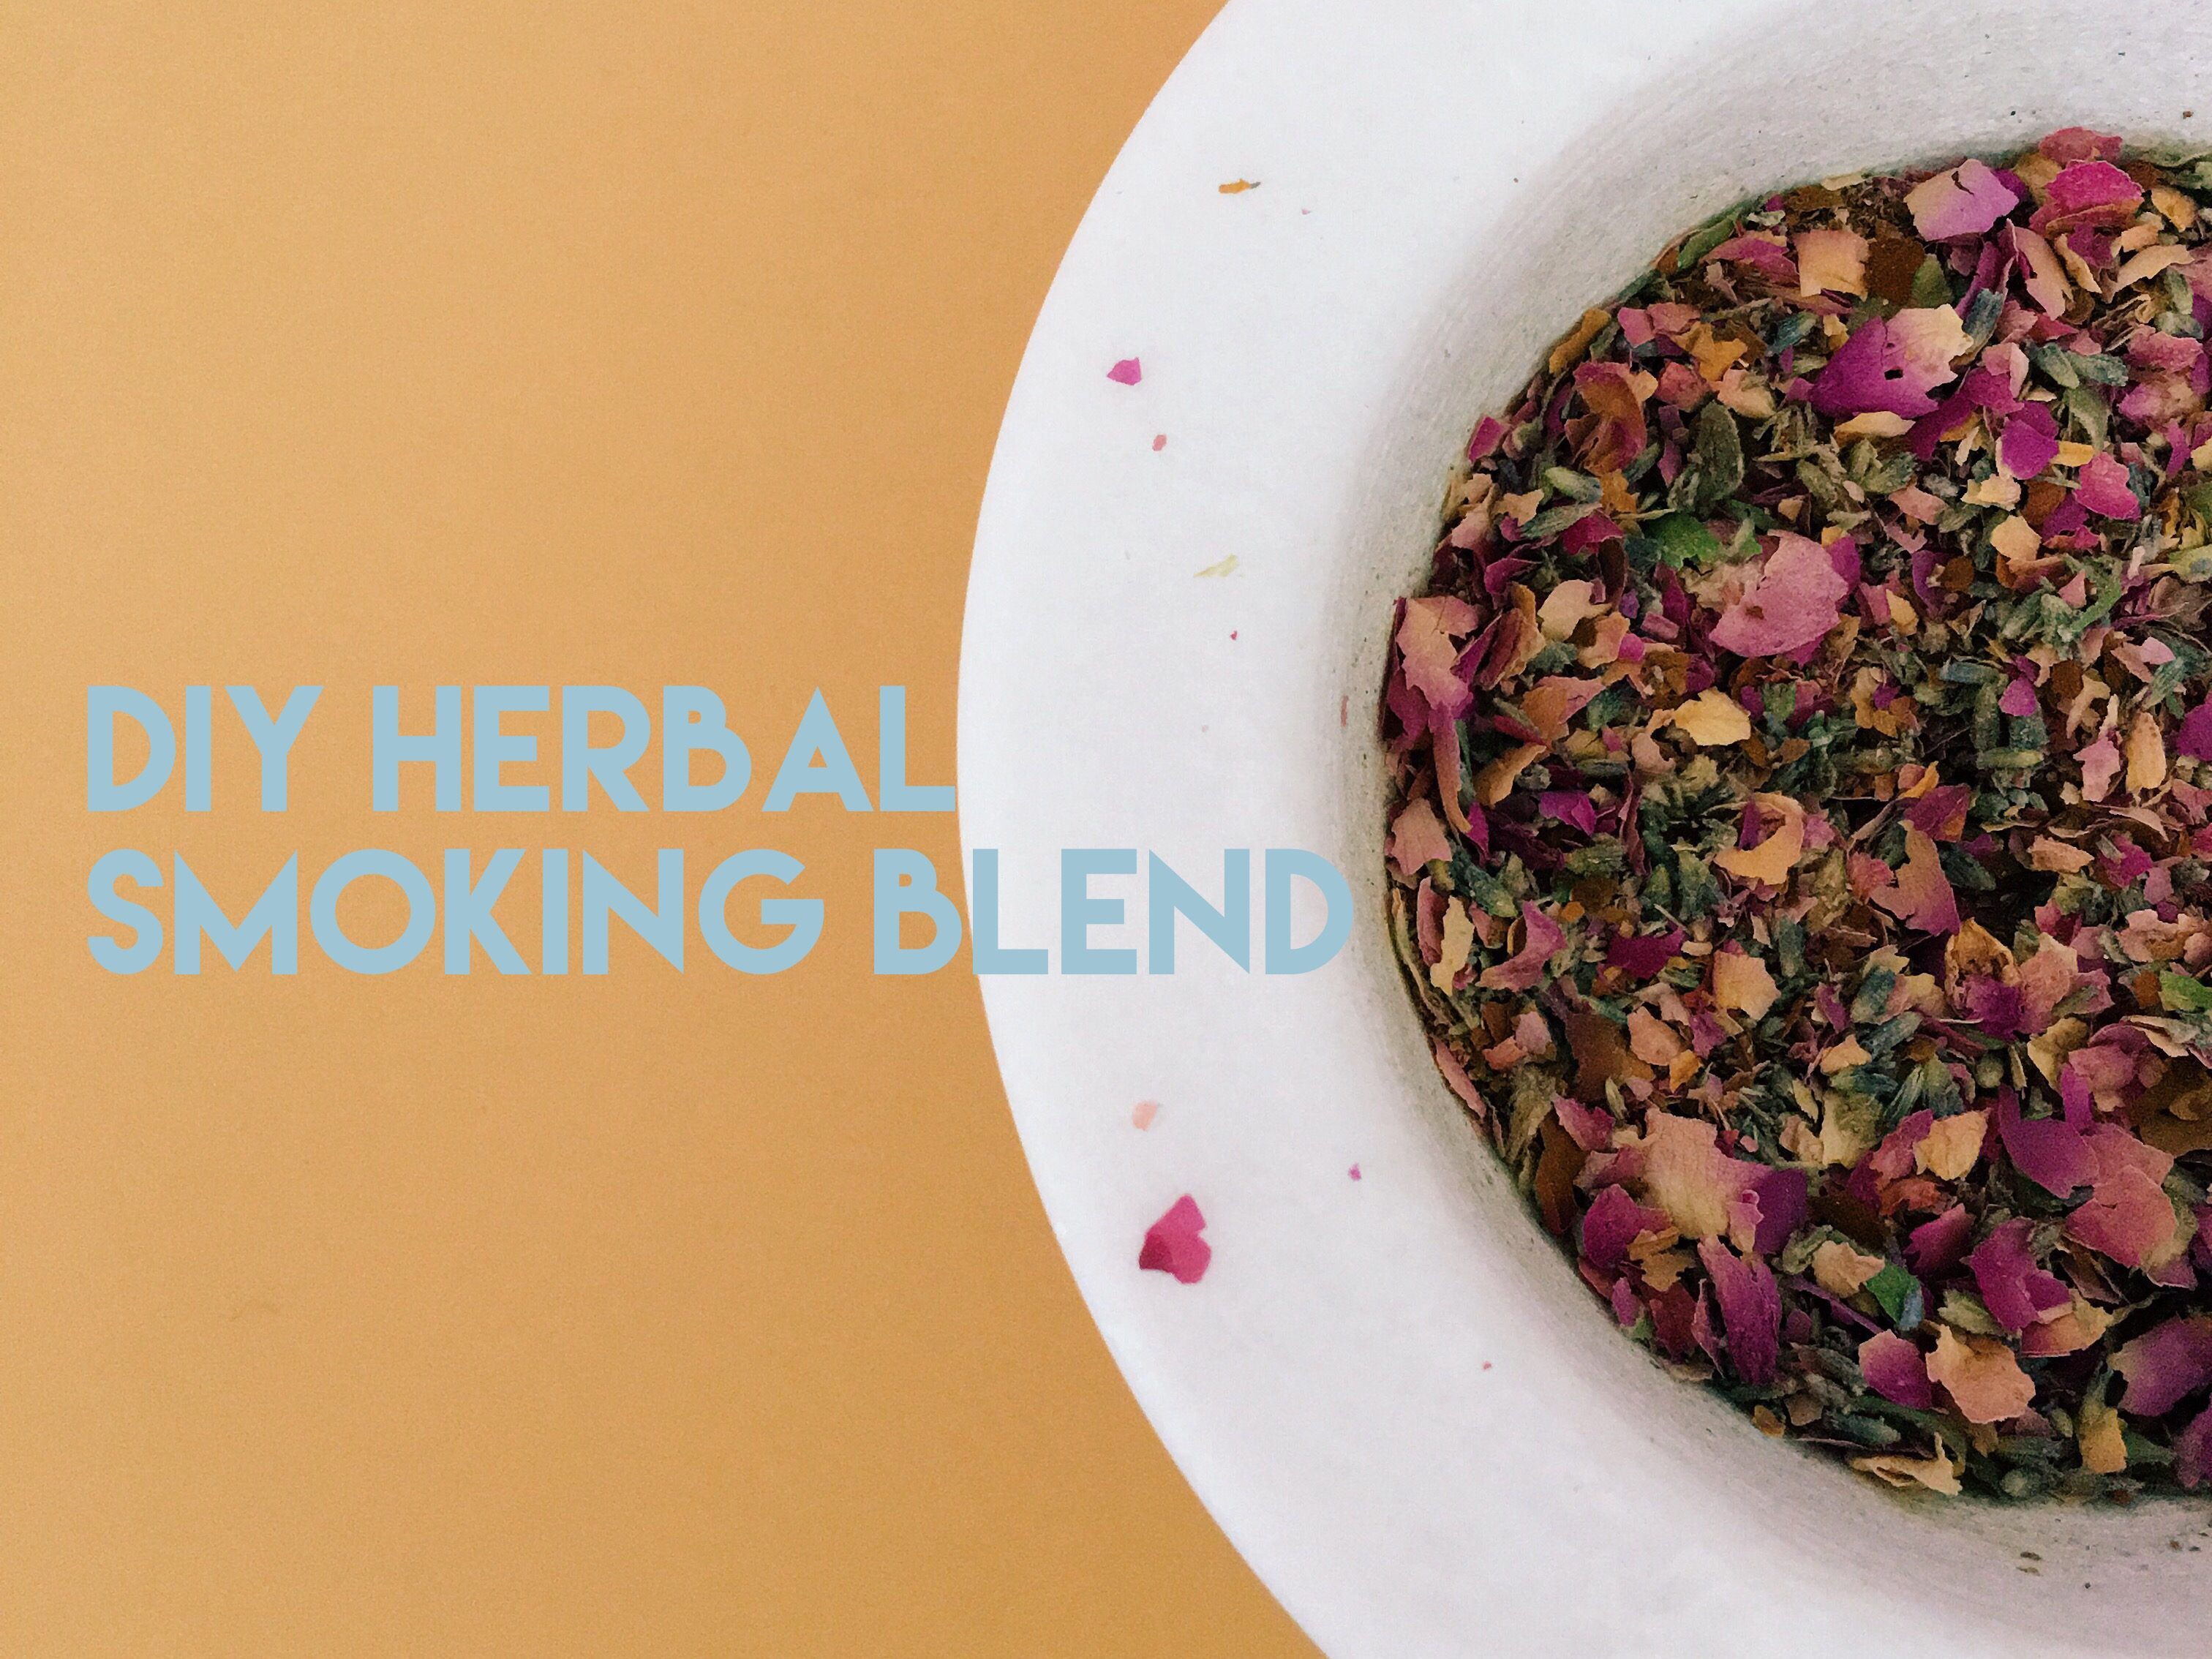 Lala Lopez Diy Herbal Smoking Blend Recipe